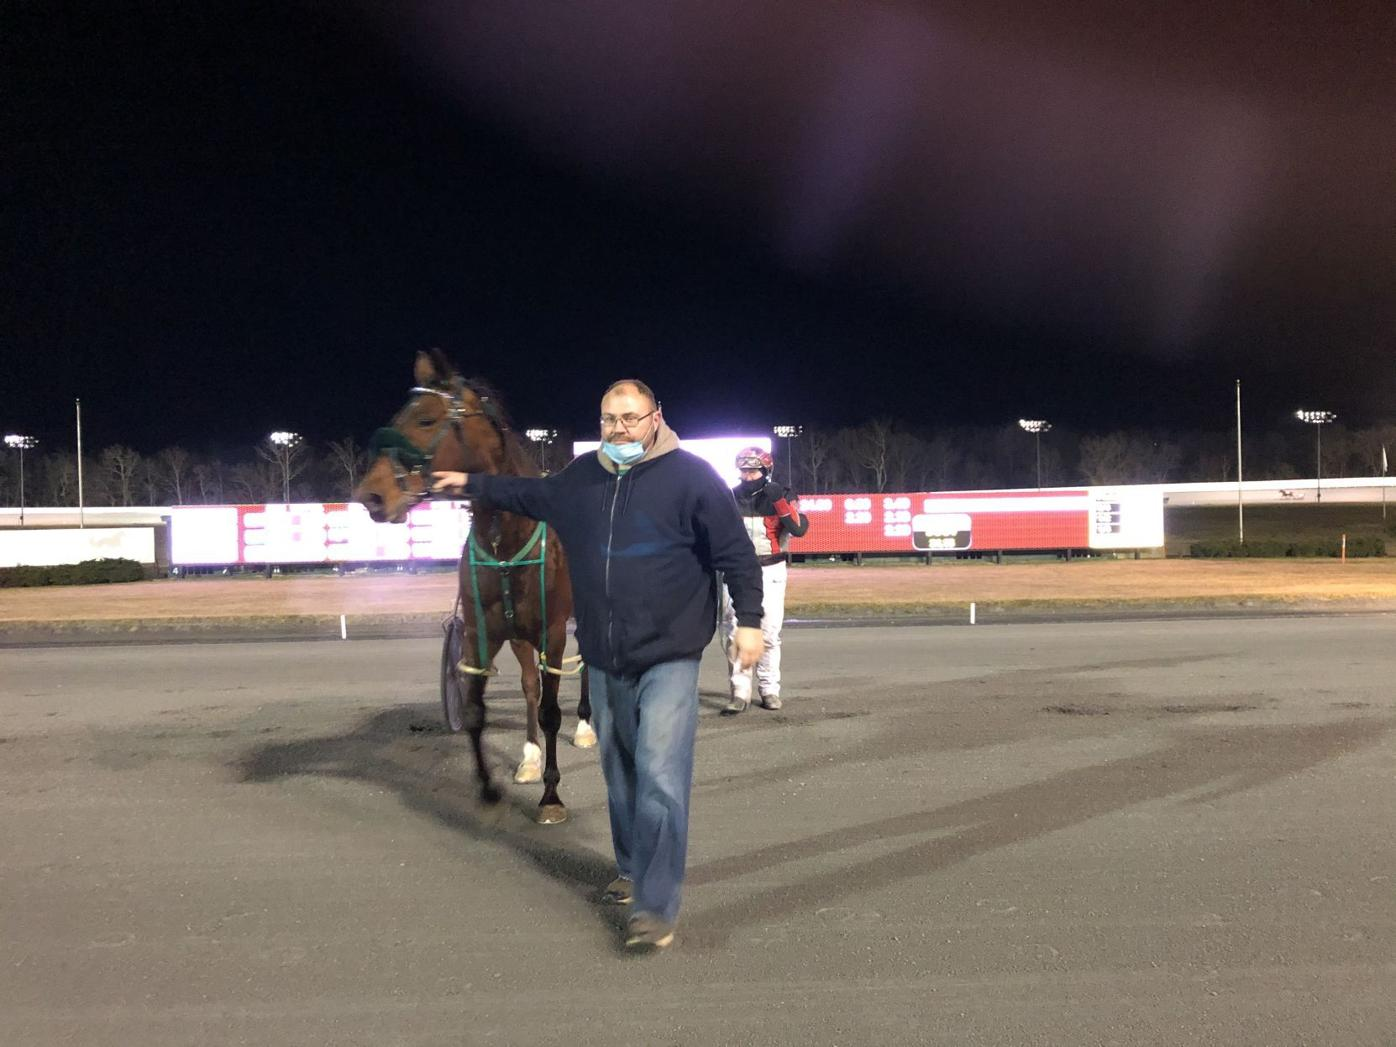 Rosecroft offers Wednesday cards